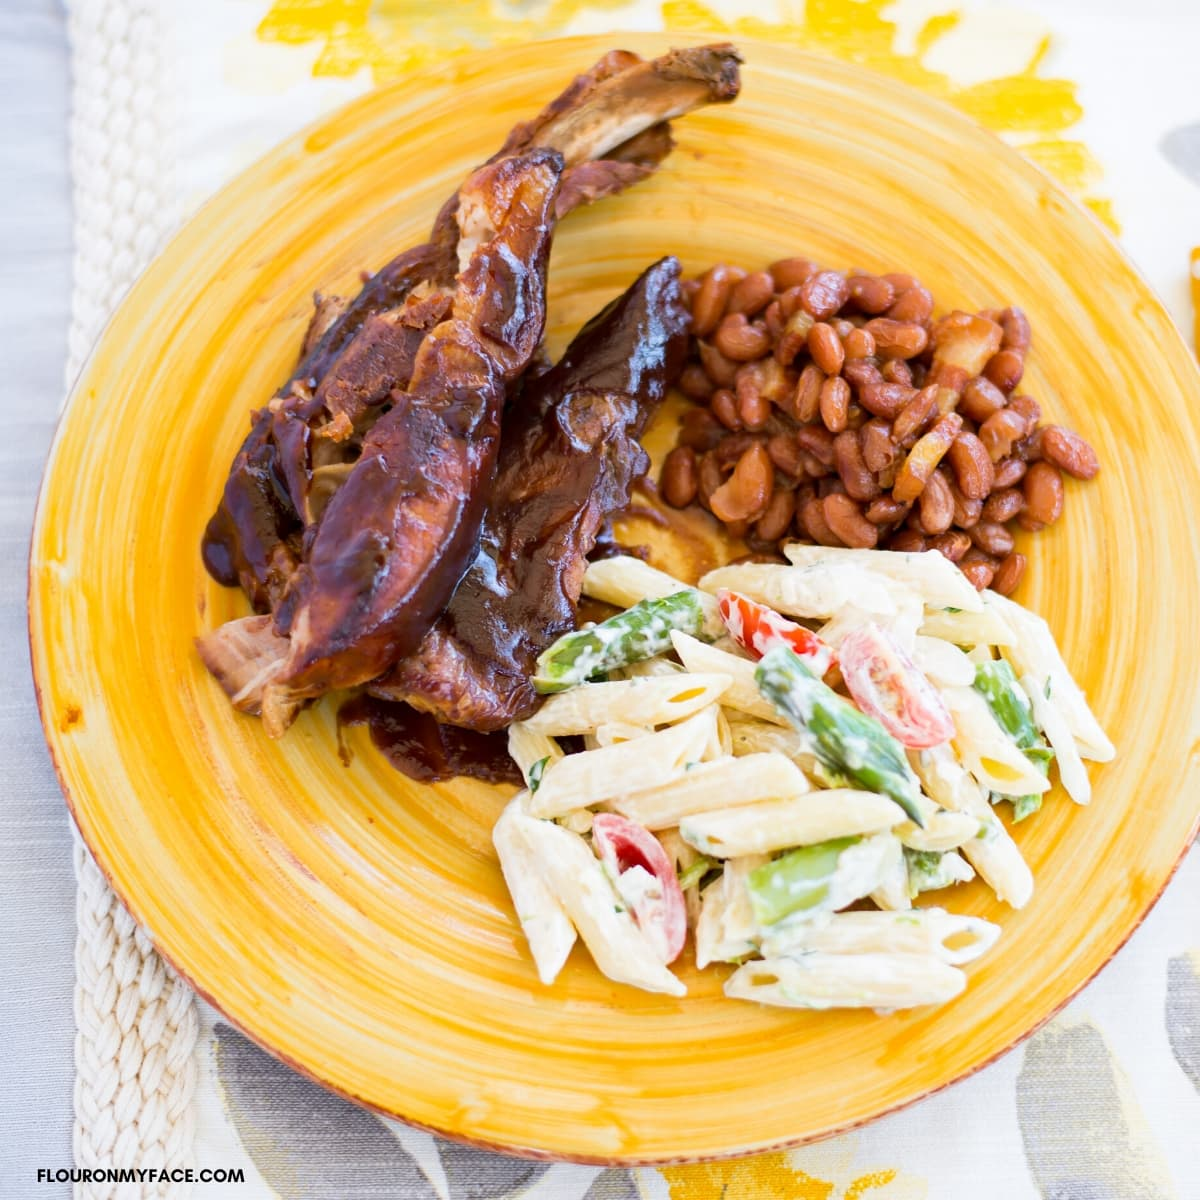 Smoky BBQ Spare ribs served with a side of baked beans and a pasta salad on a yellow glass plate.